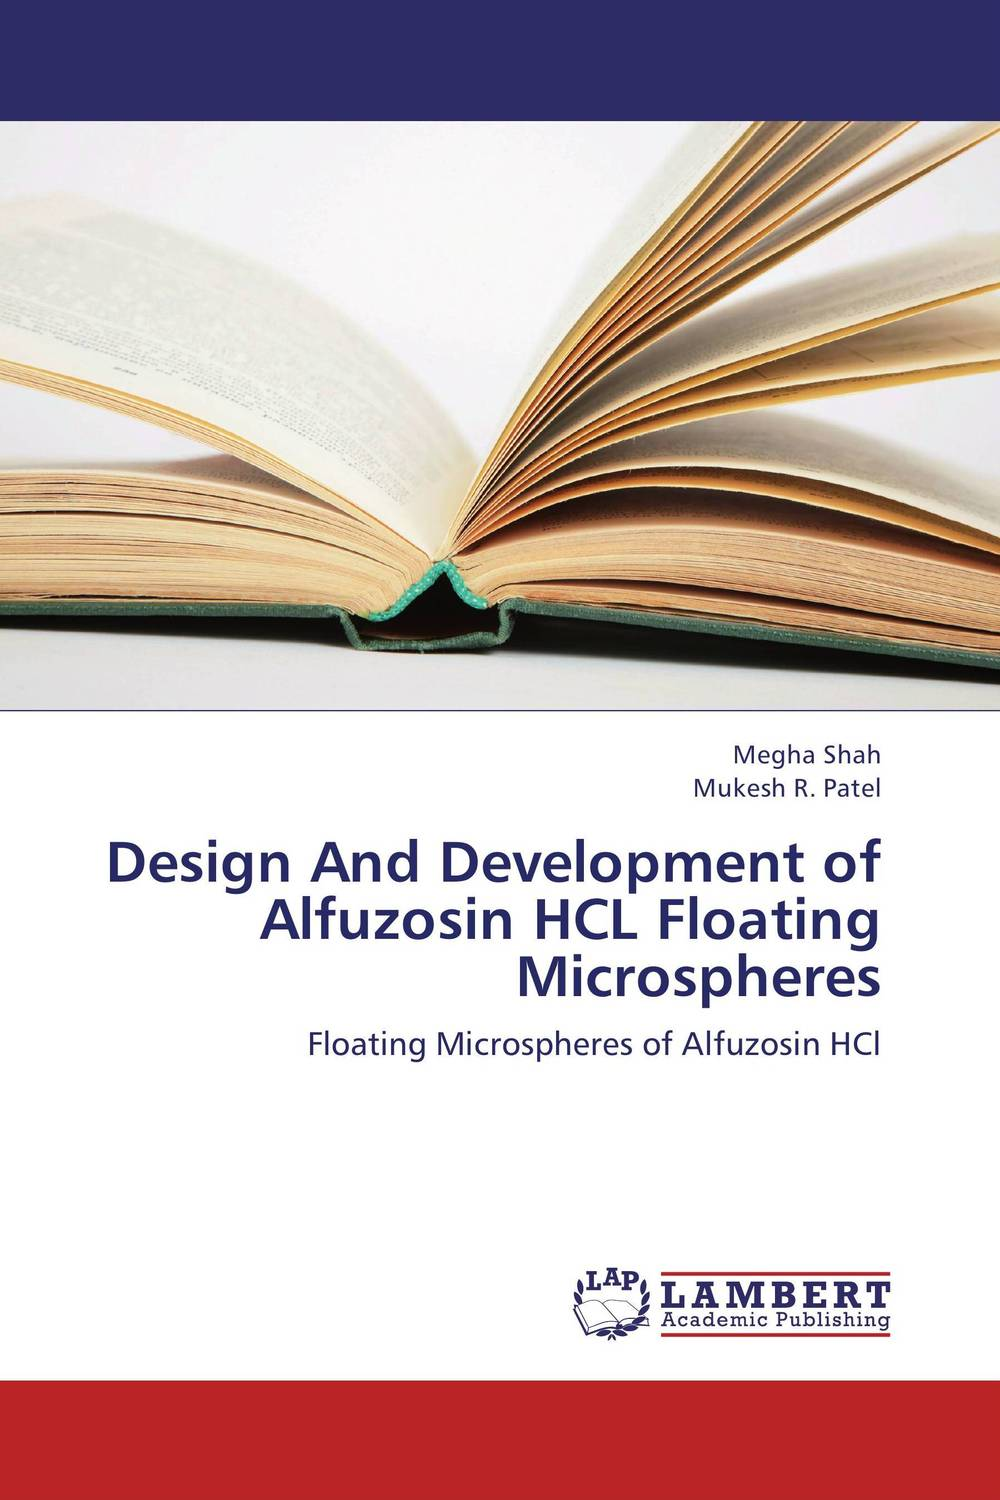 Design And Development of Alfuzosin HCL Floating Microspheres excipients used in the design of lipidic and polymeric microspheres